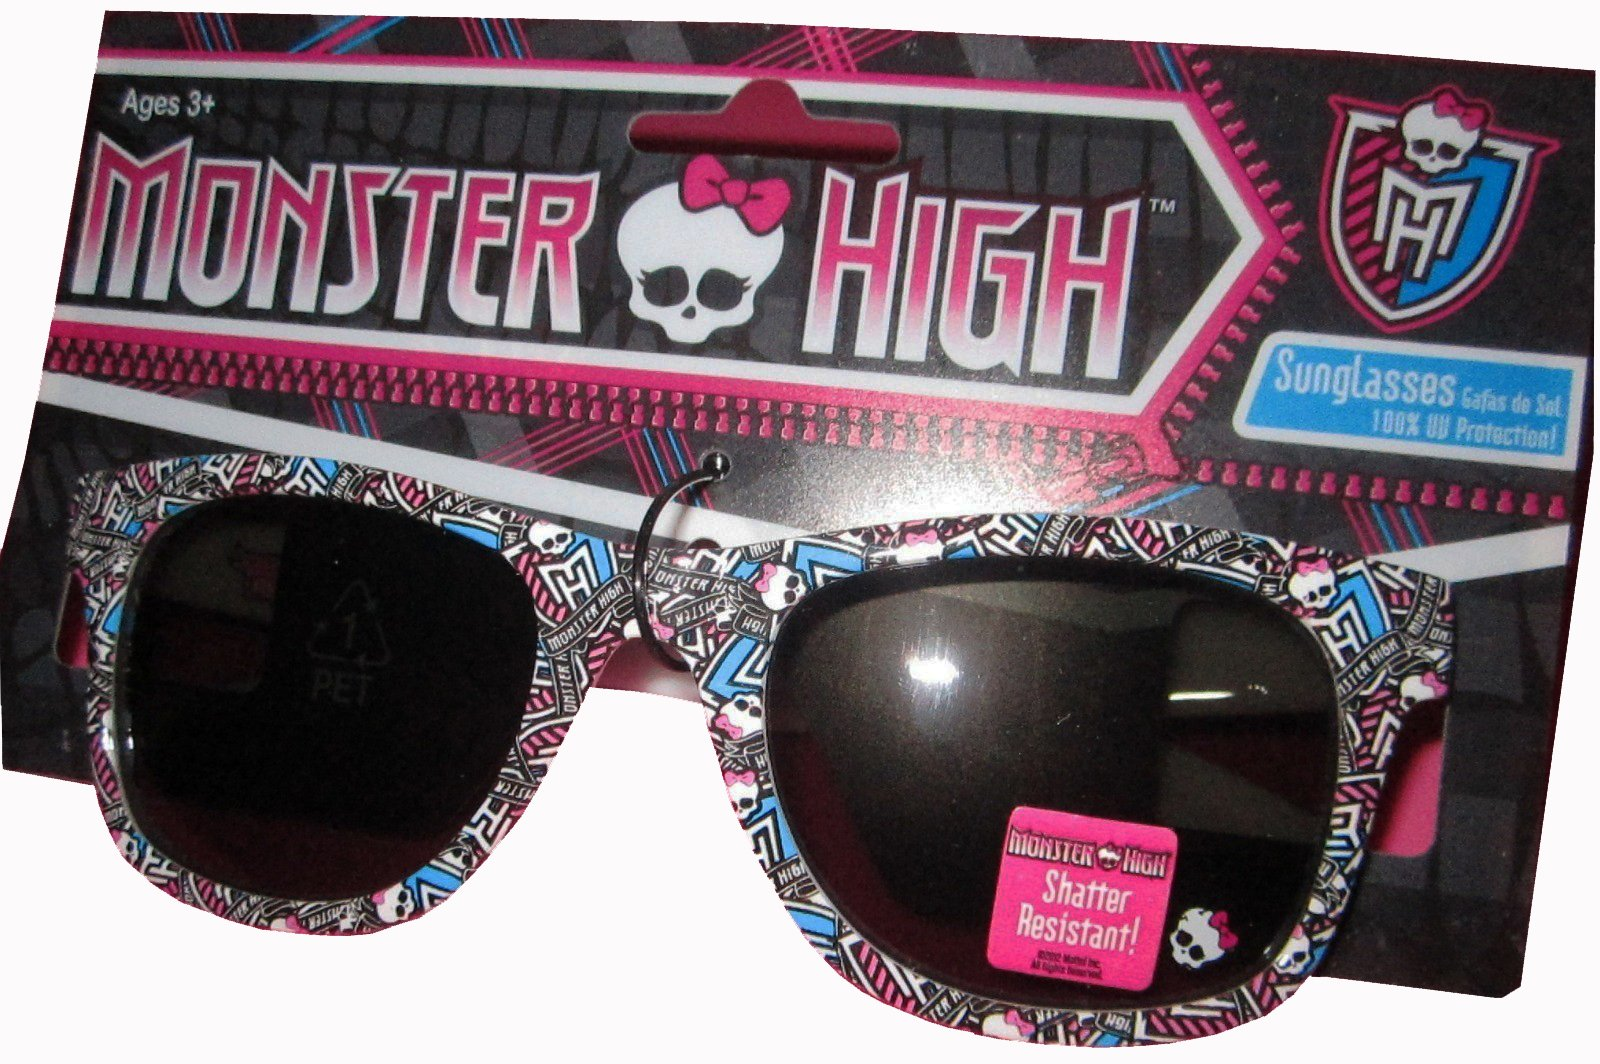 Monster High Sunglasses(Colors/Styles Vary) by Mattel